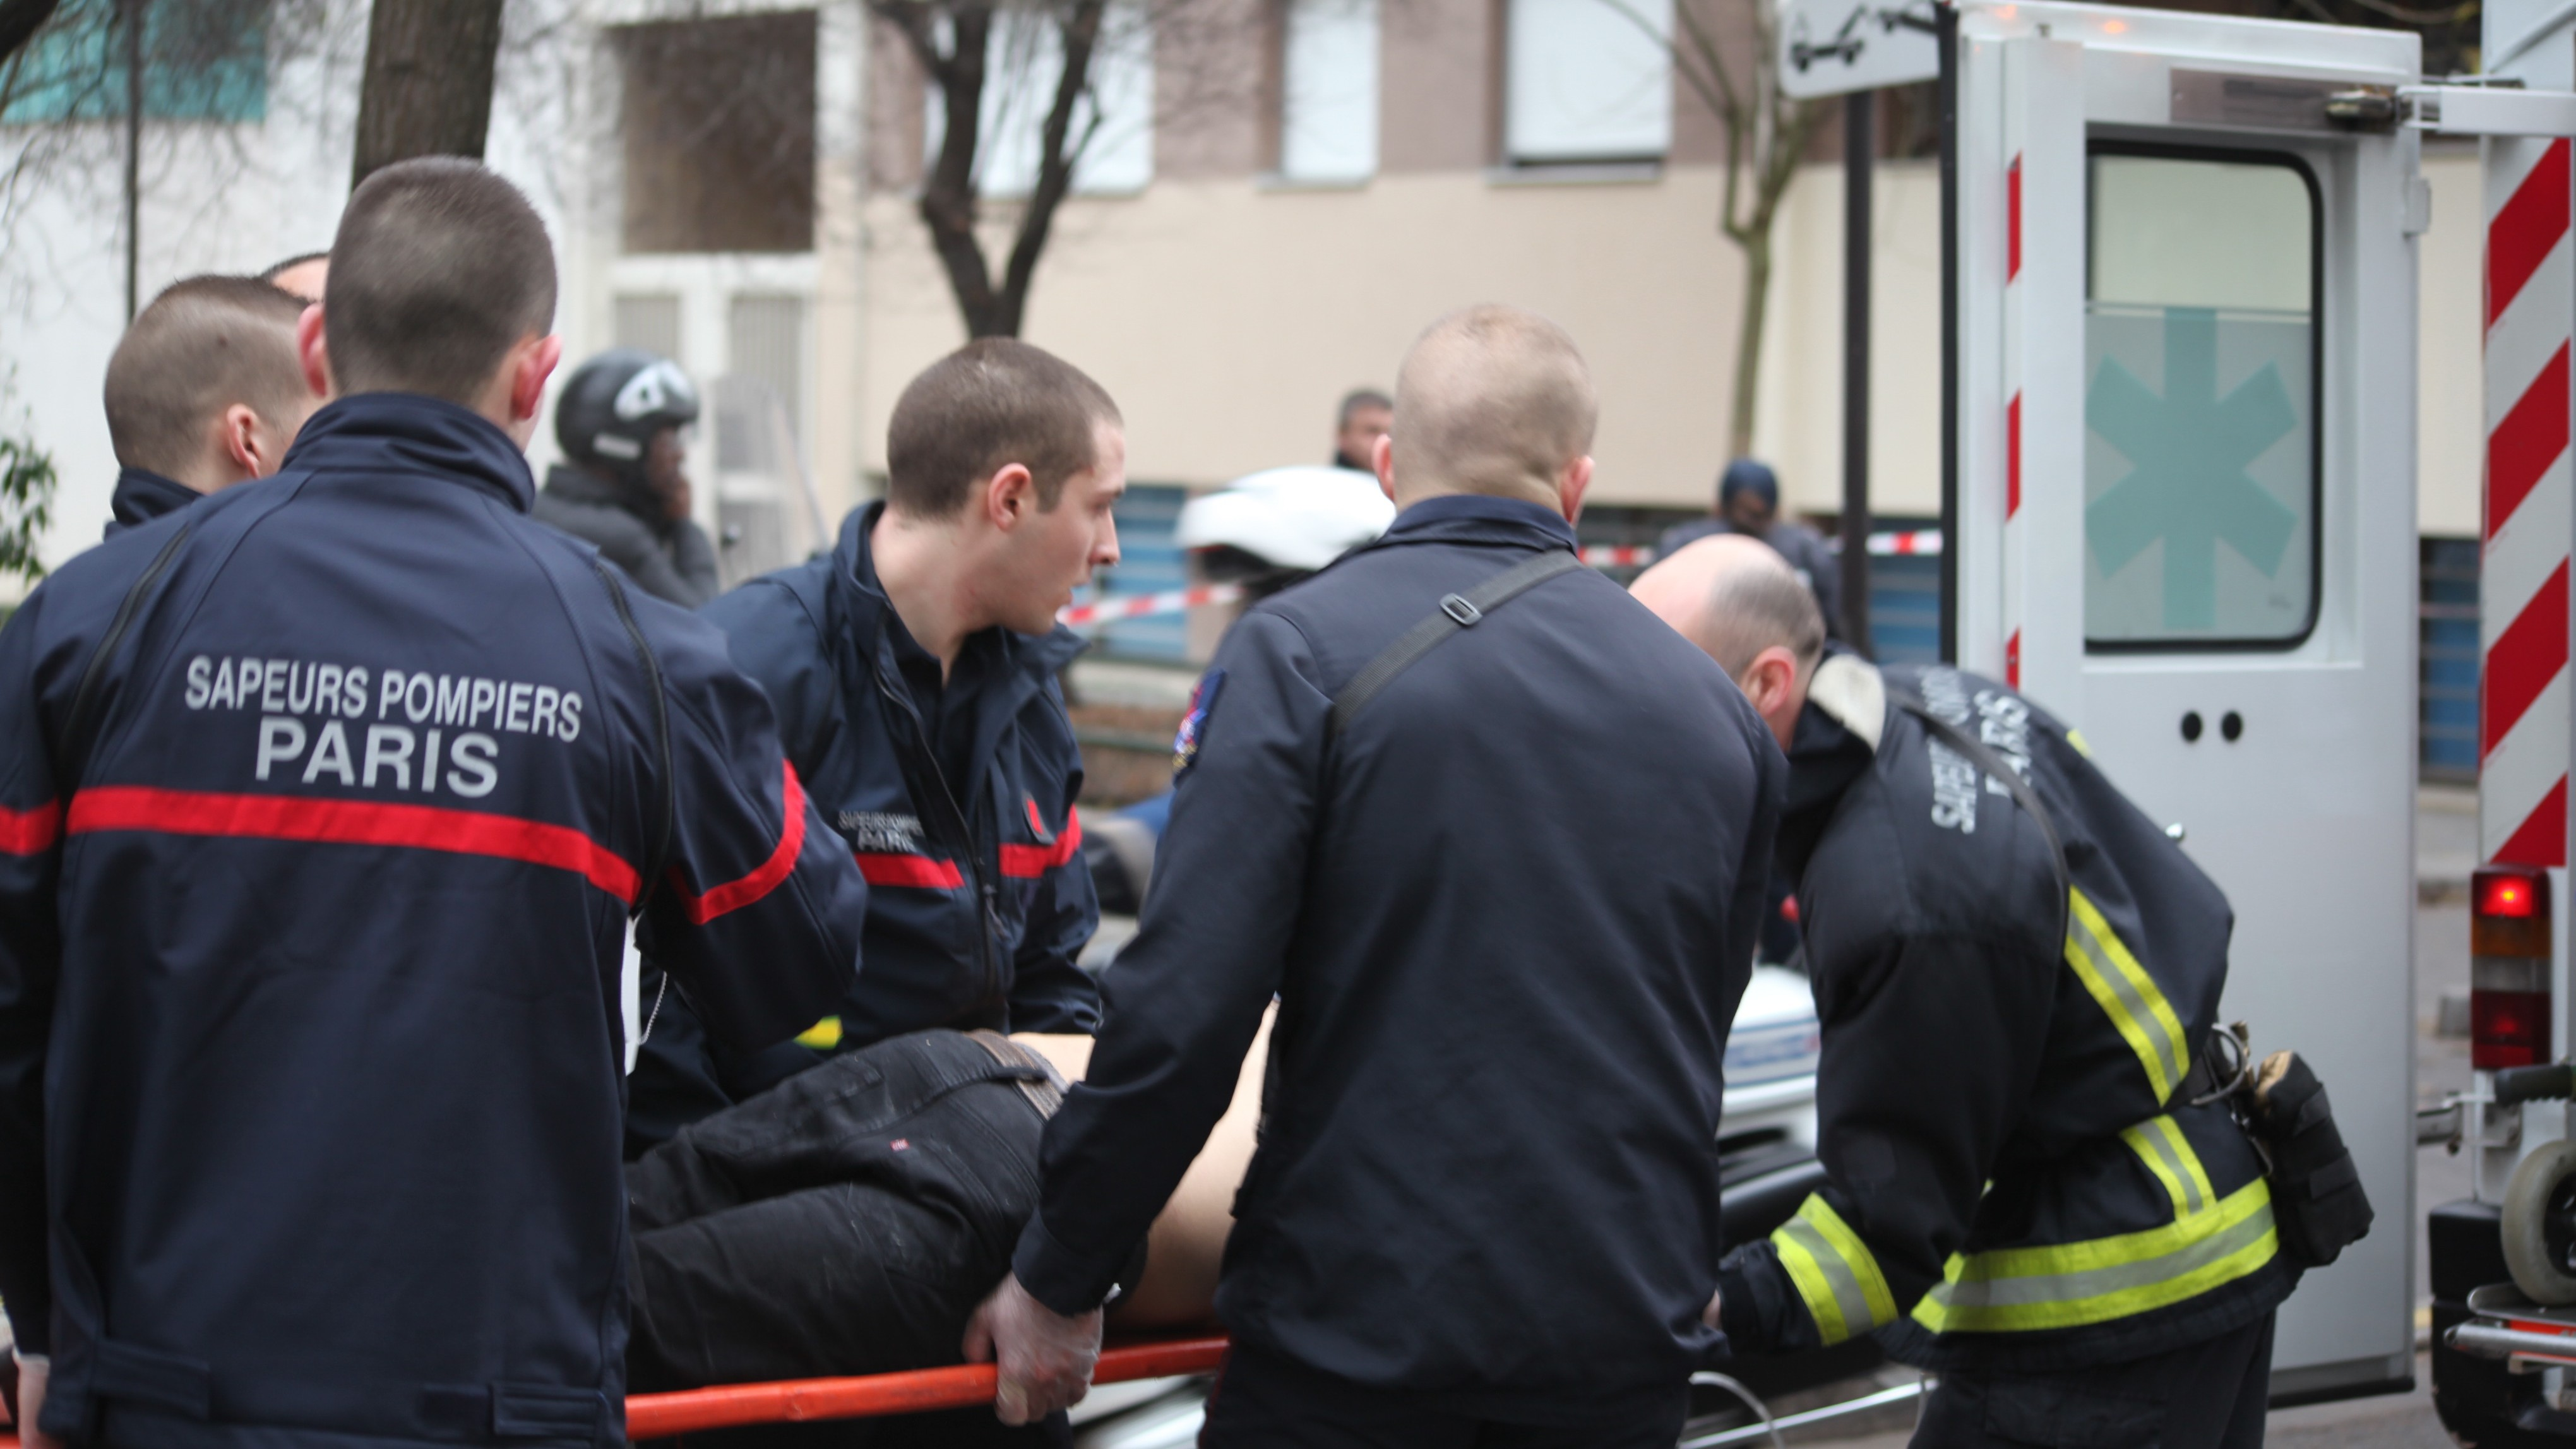 'Charlie Hebdo' Shooting Rampage Is Fourth Attack In Three Weeks to Raise Terror Concerns In France